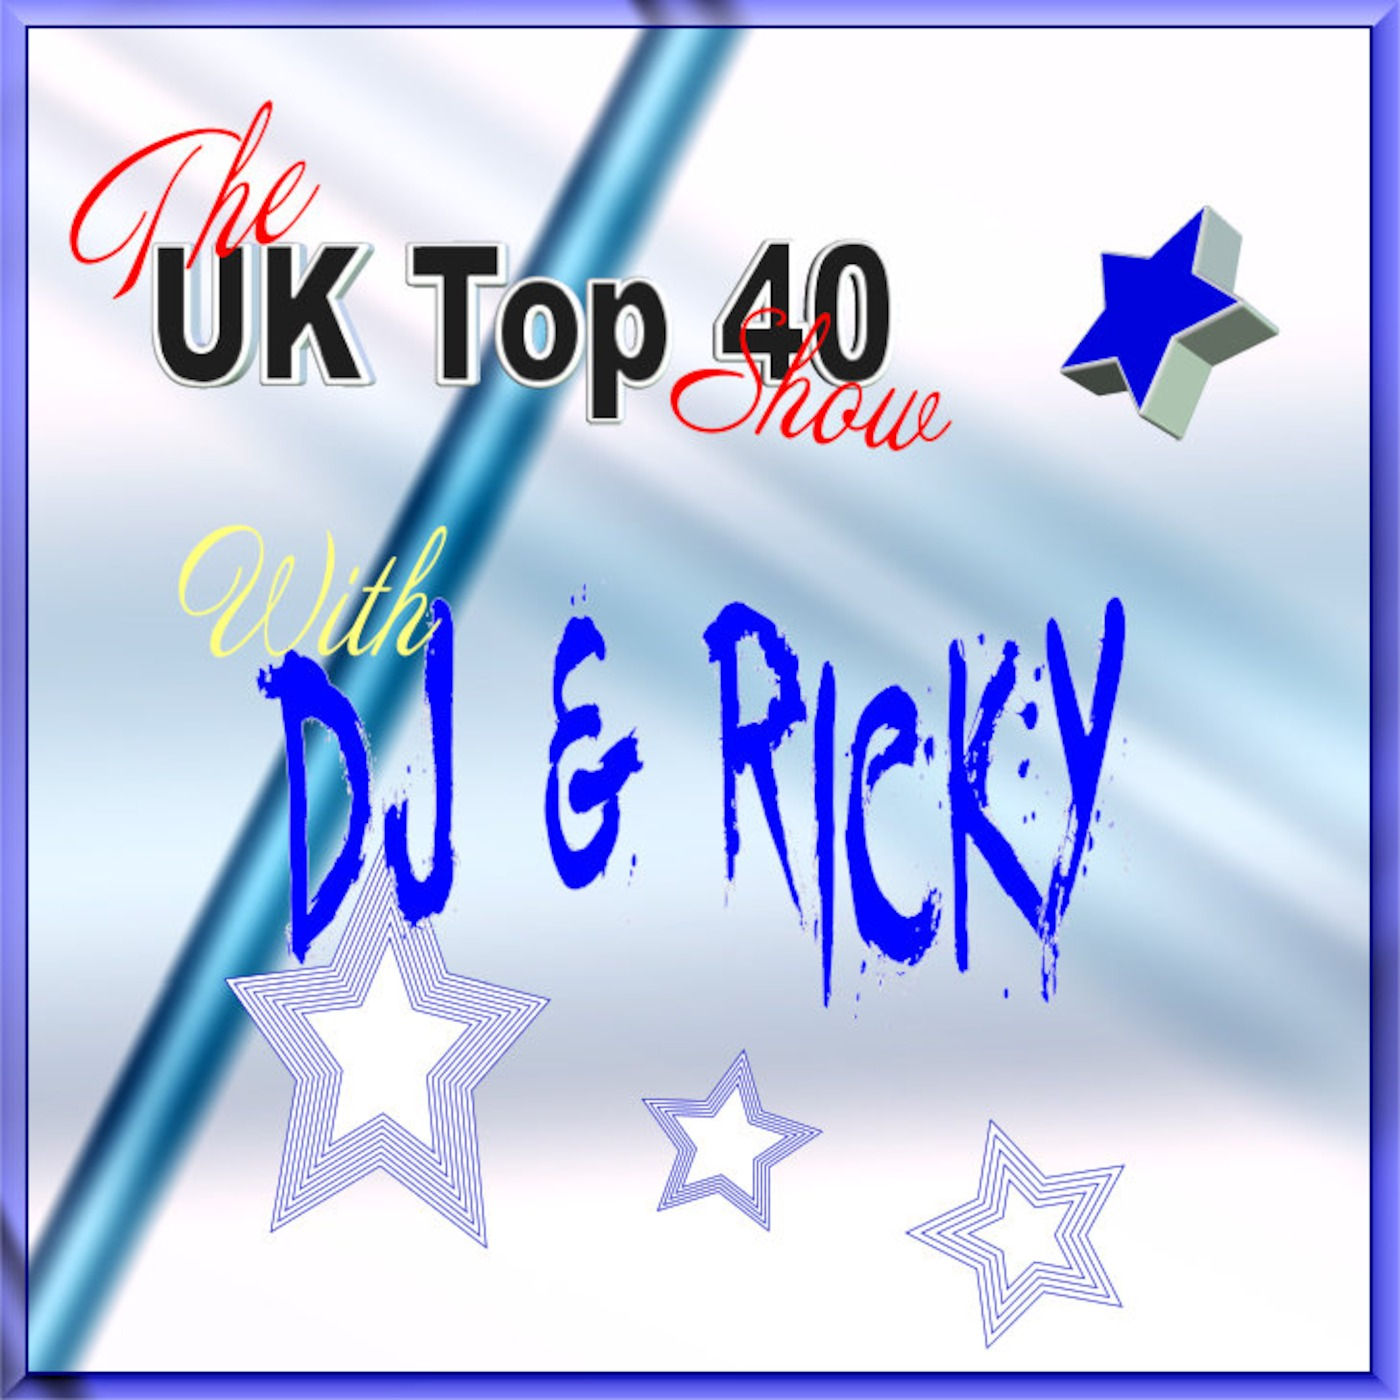 Official UK Top 40 Chart | Listen Free on Castbox